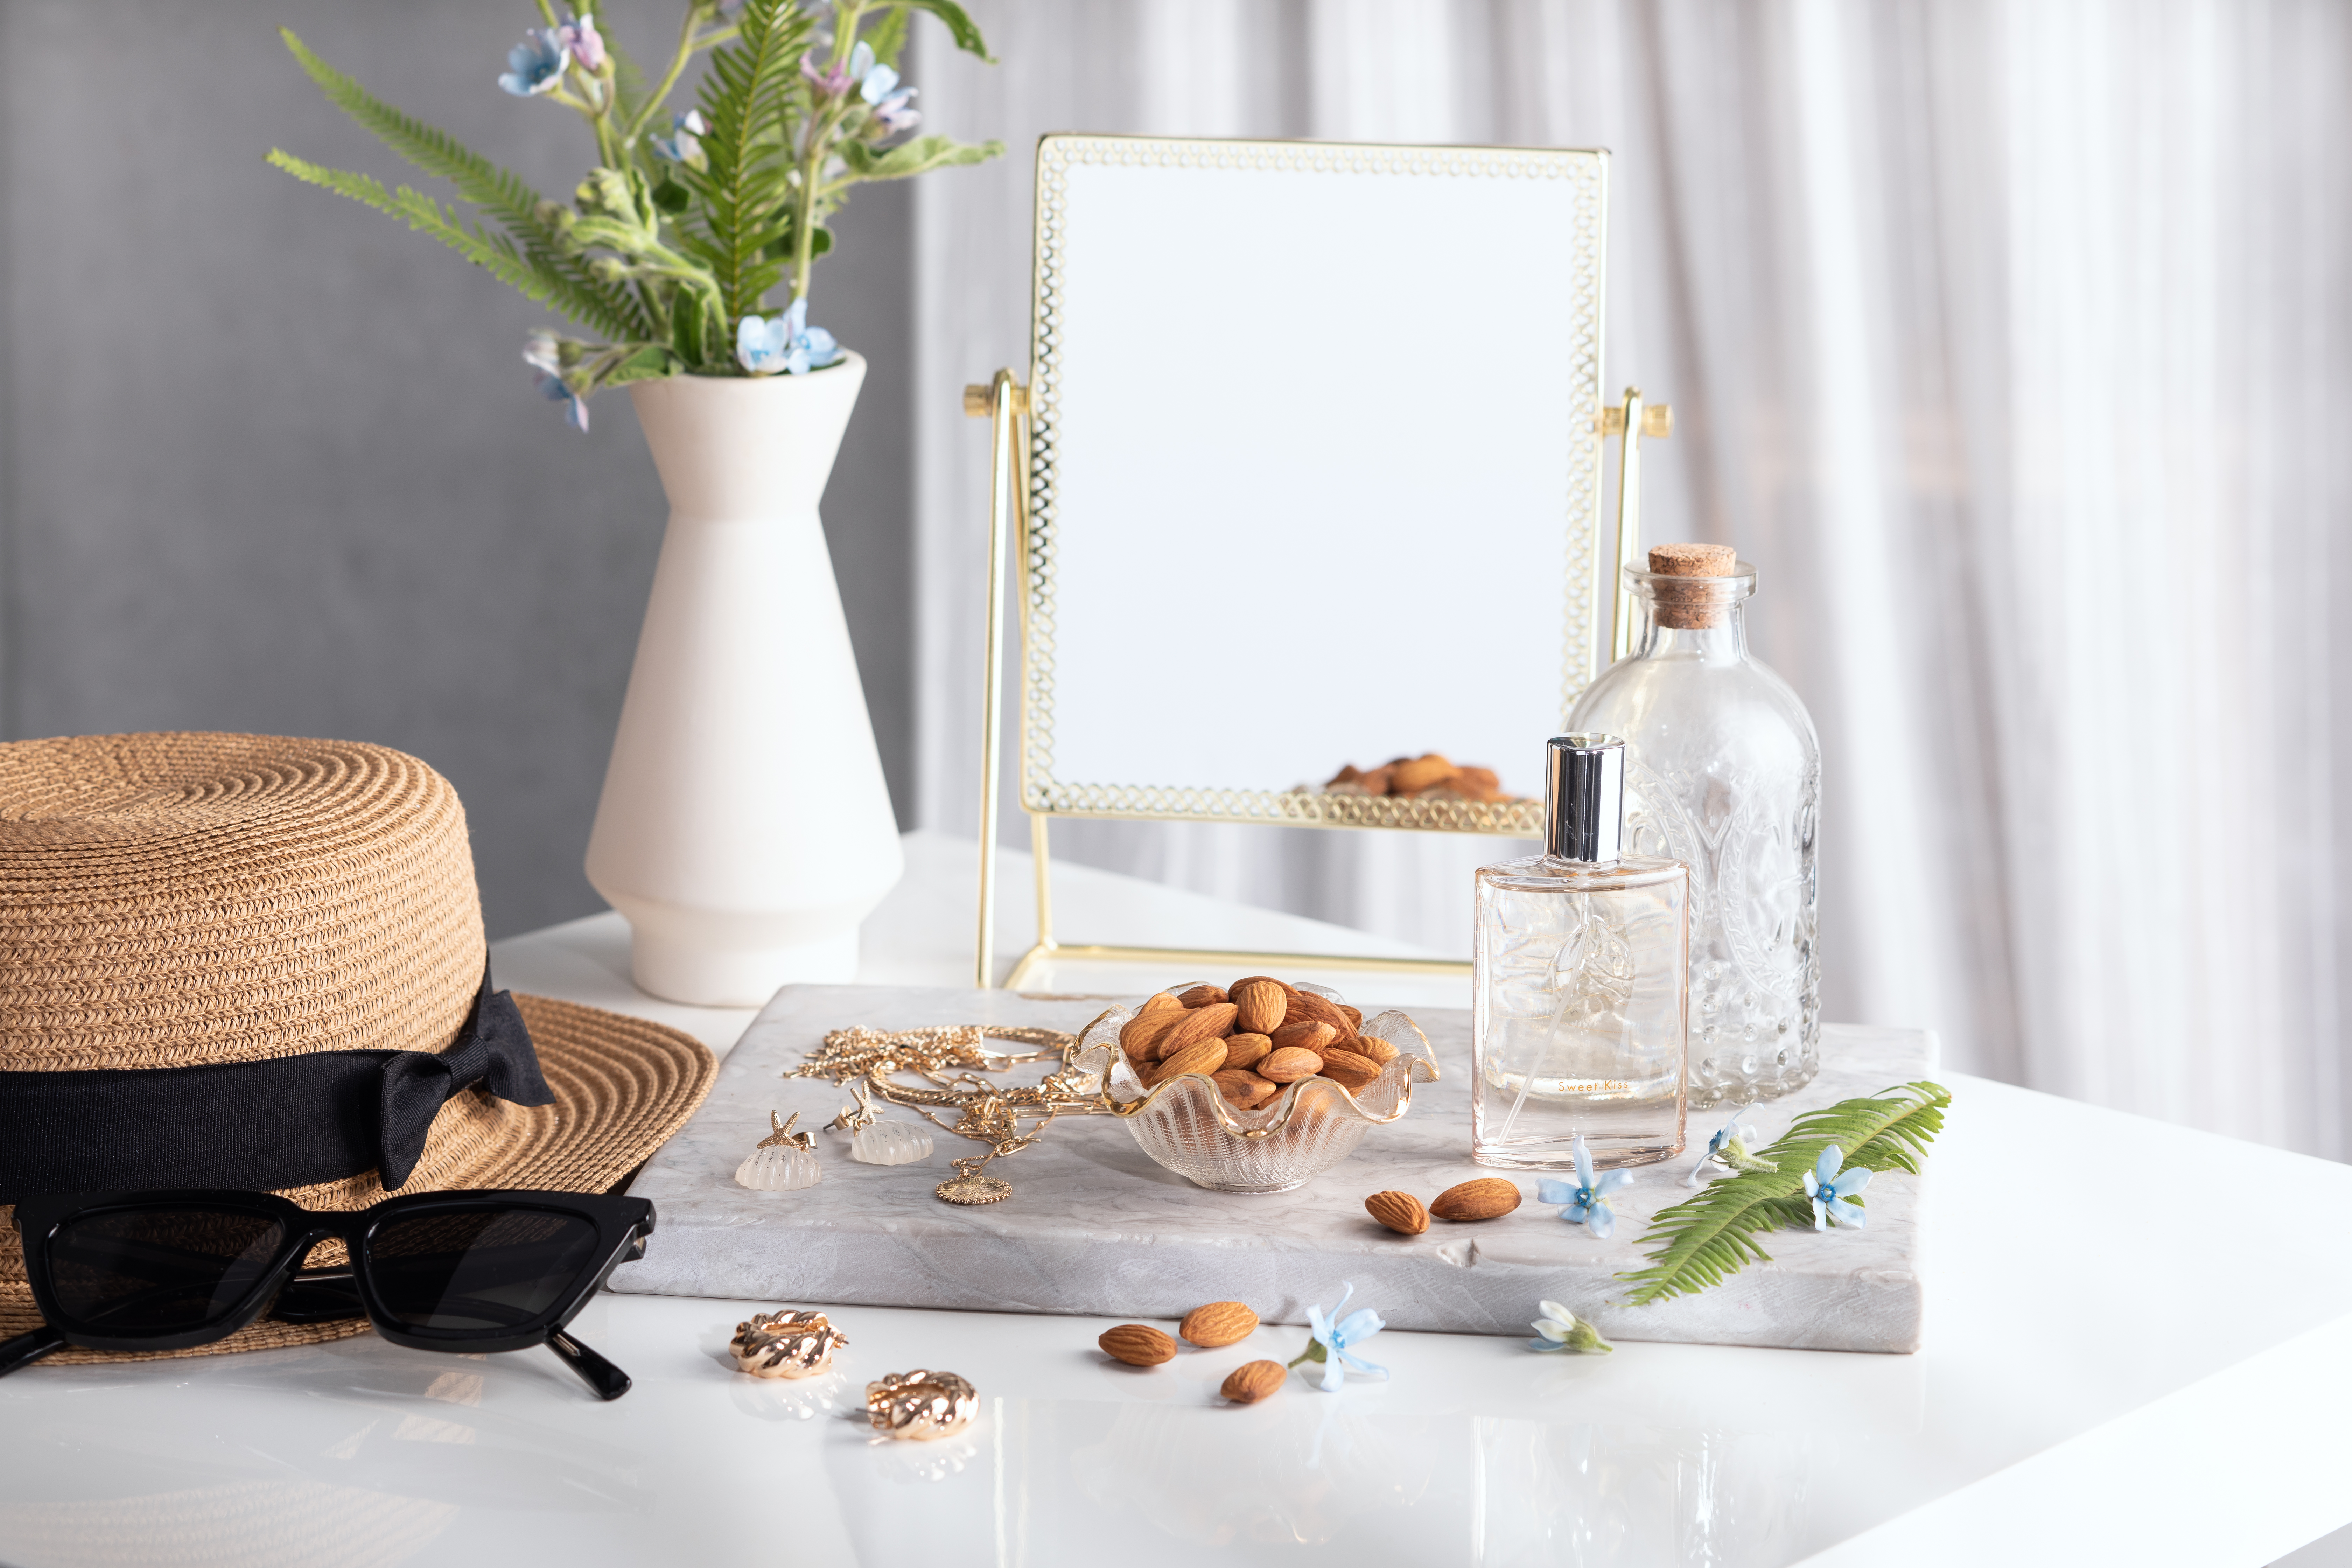 almonds on dressing table